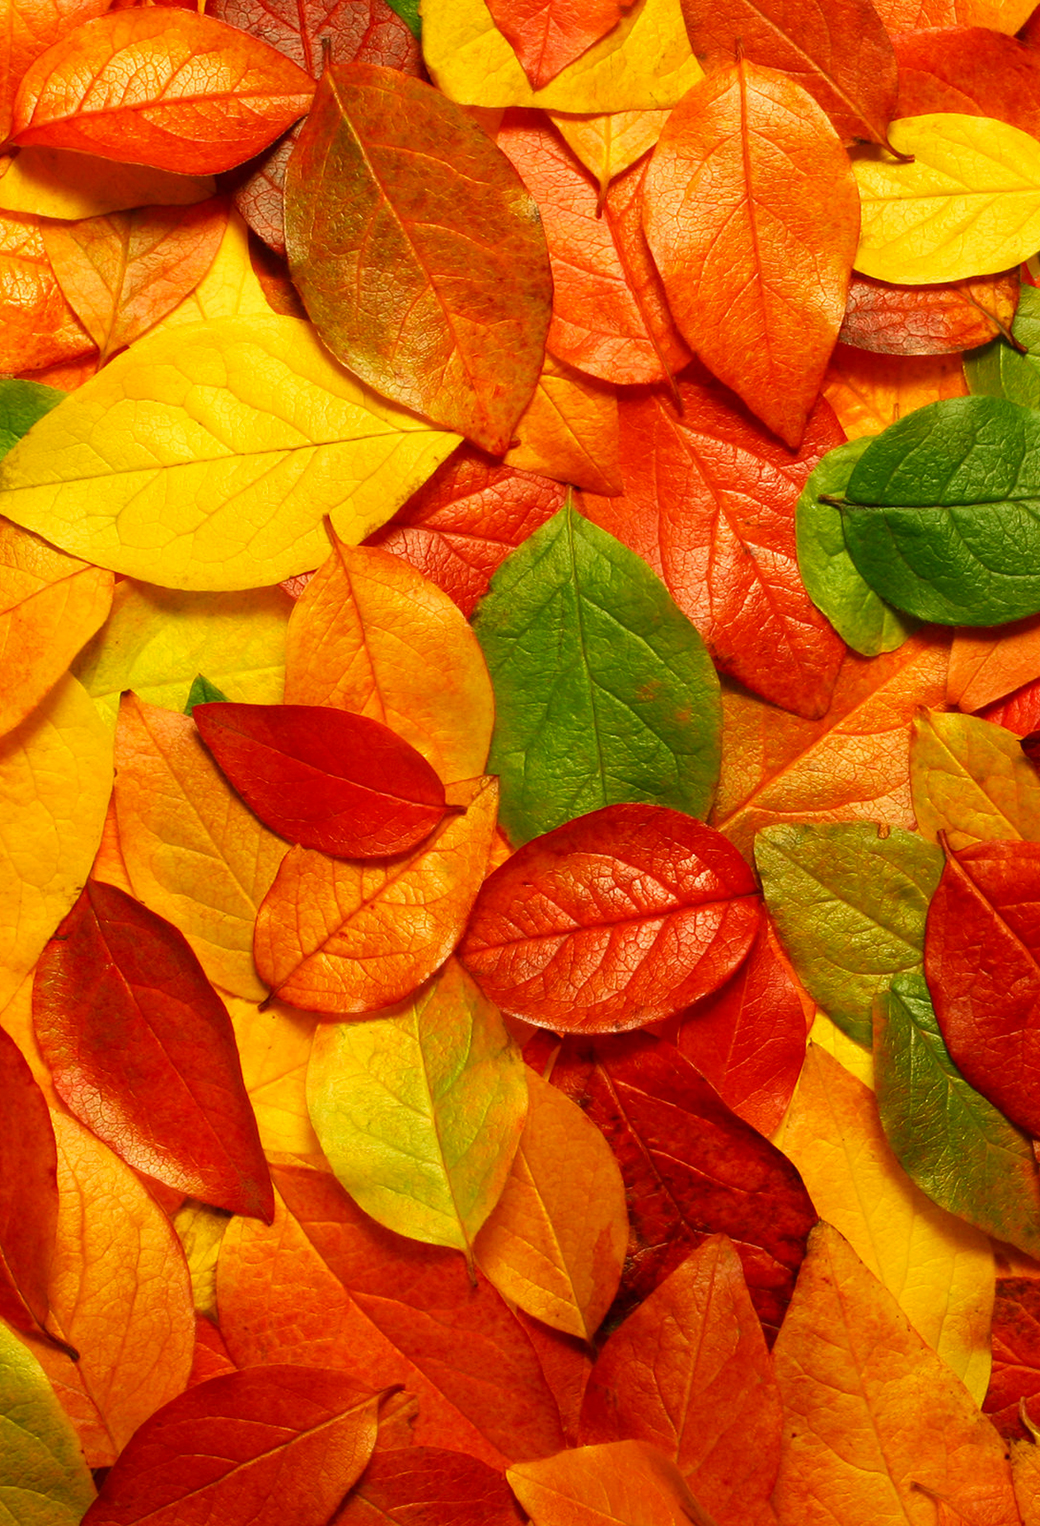 Autumn Leaves 3Wallpapers iPhone Autumn Leaves